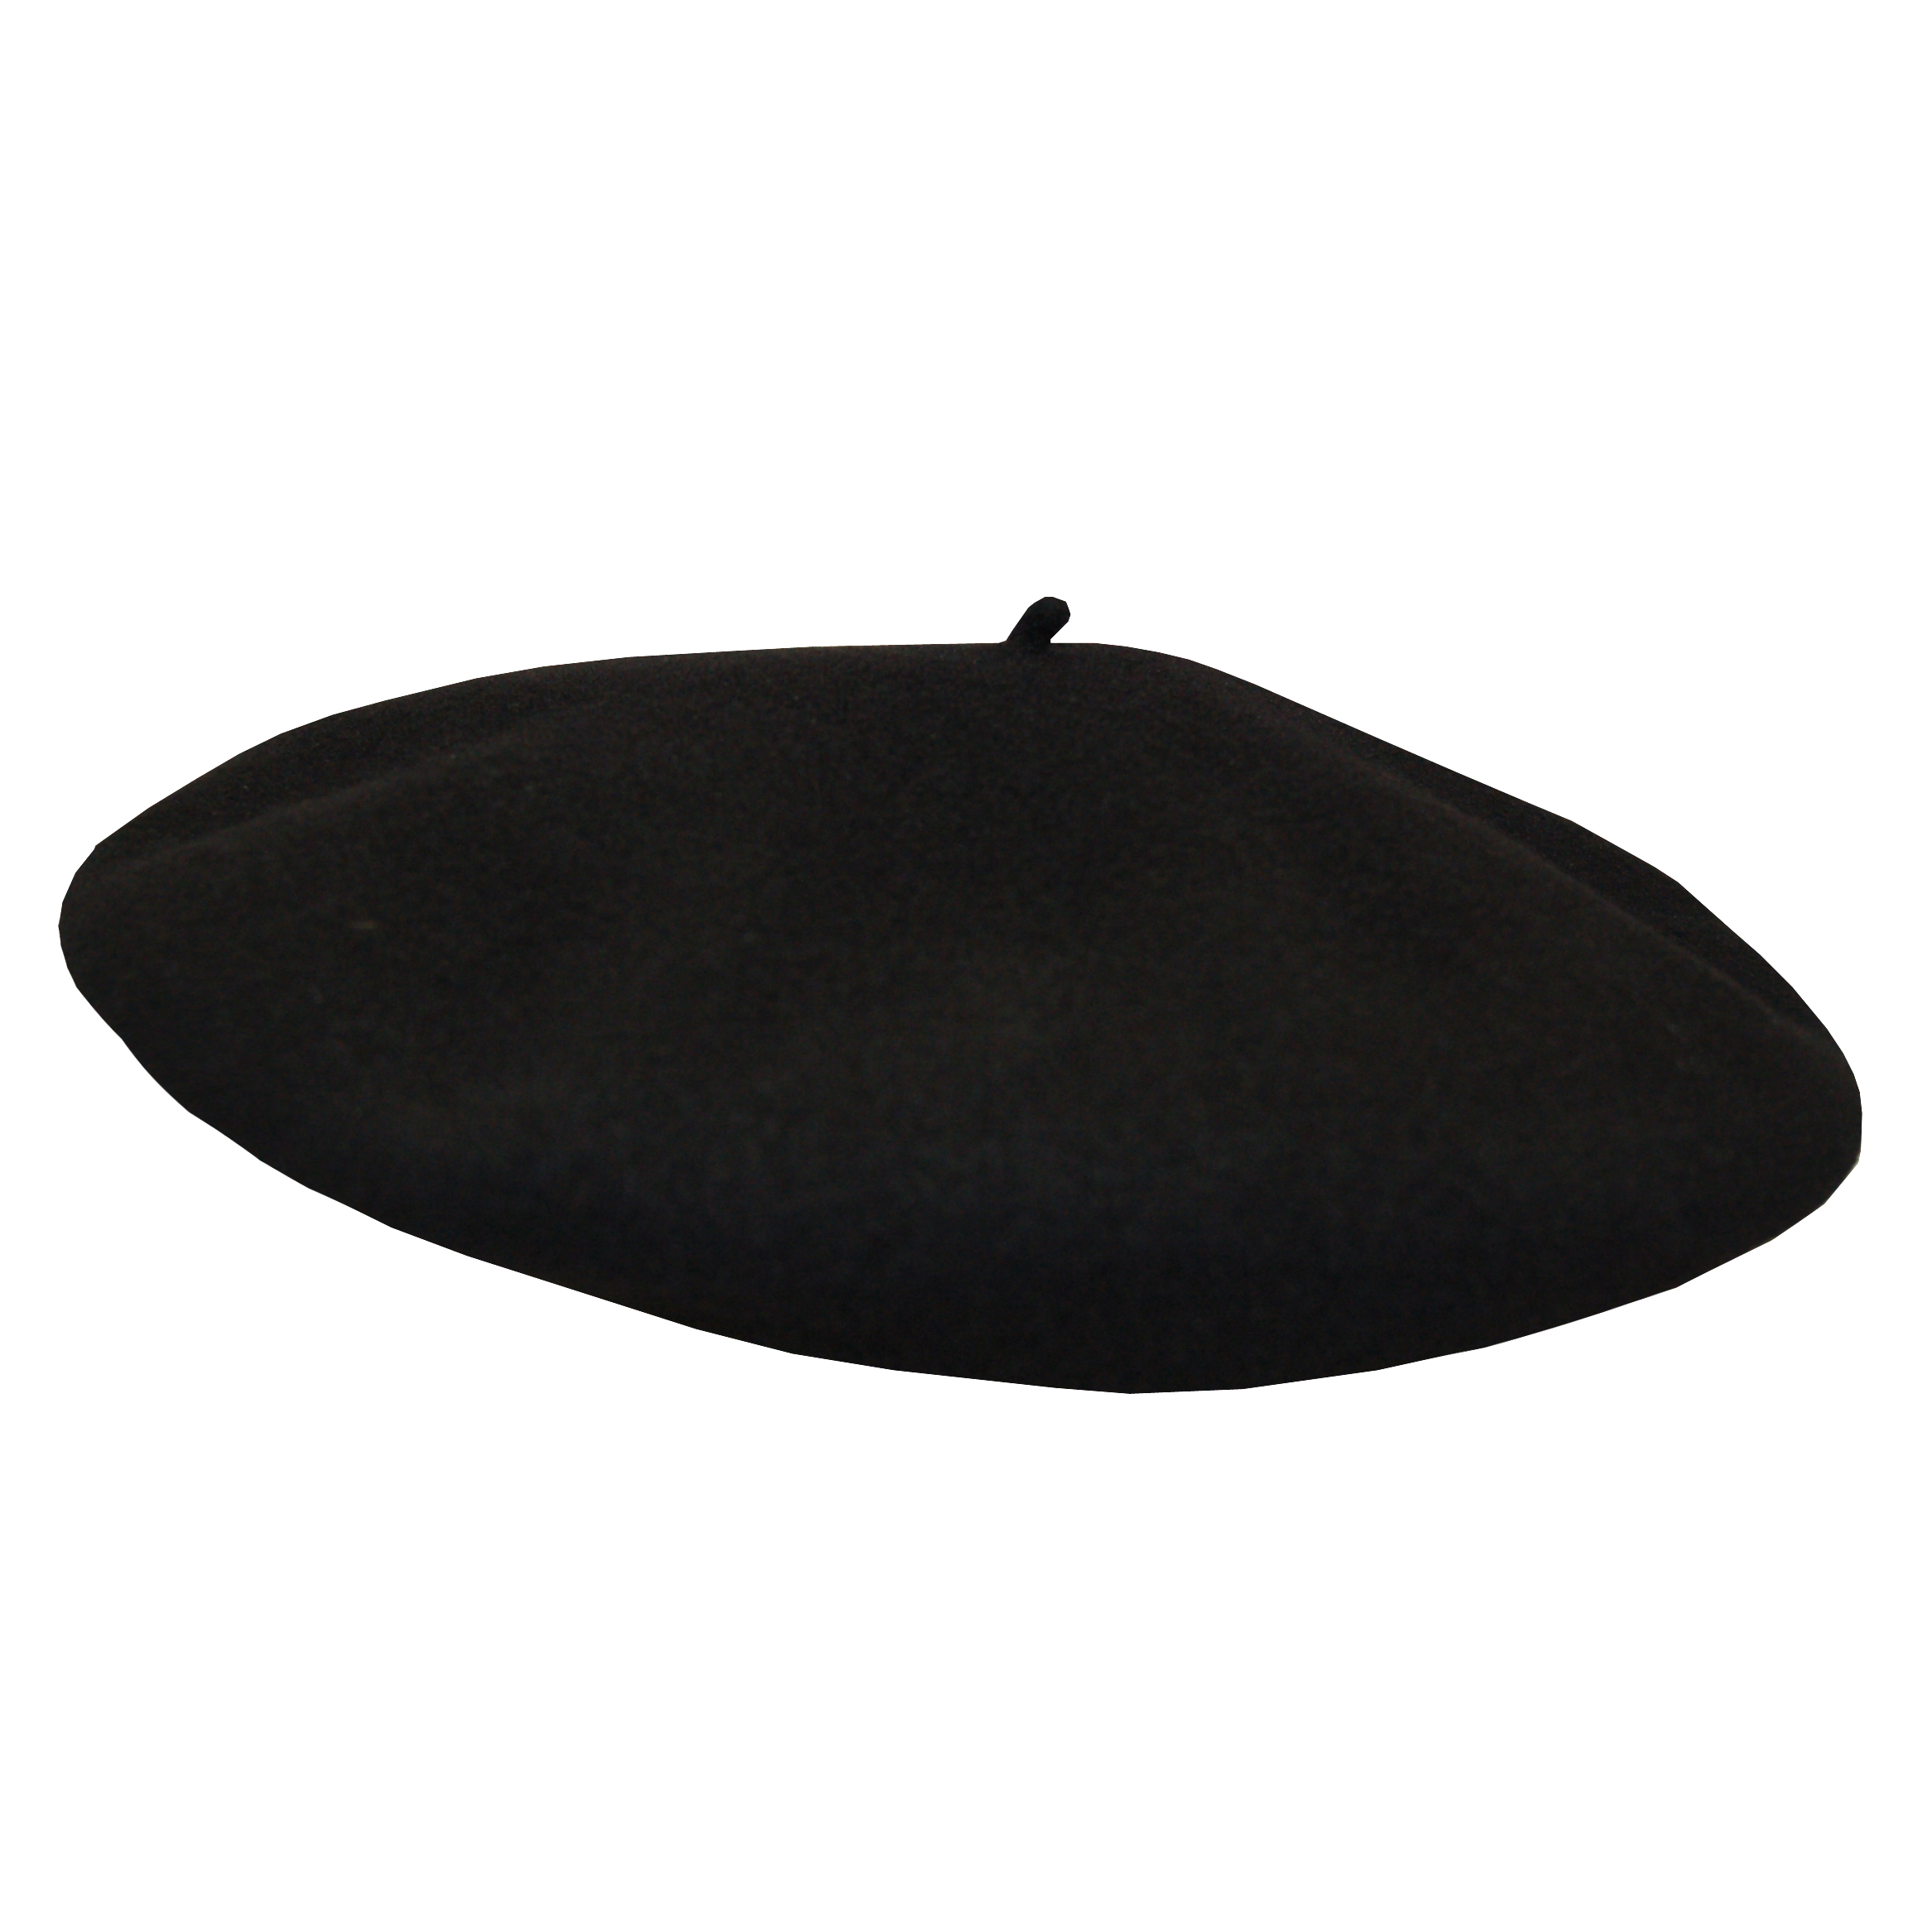 eca19a6cc Laulhere French Basque Beret